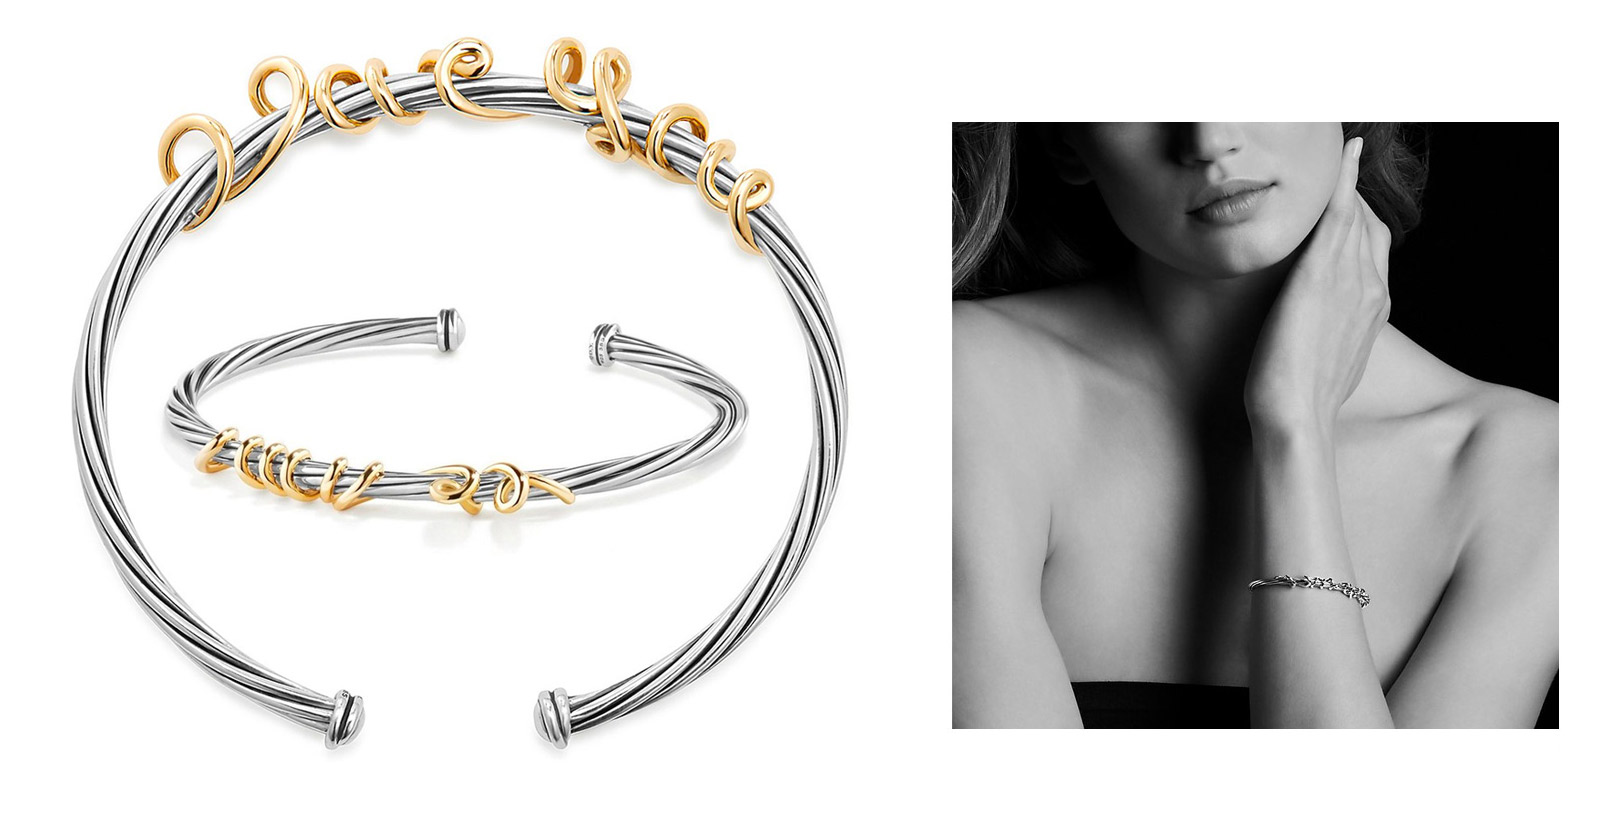 David Yurman 'Whispers' wrapped hidden message bracelet  in 18k gold and silver